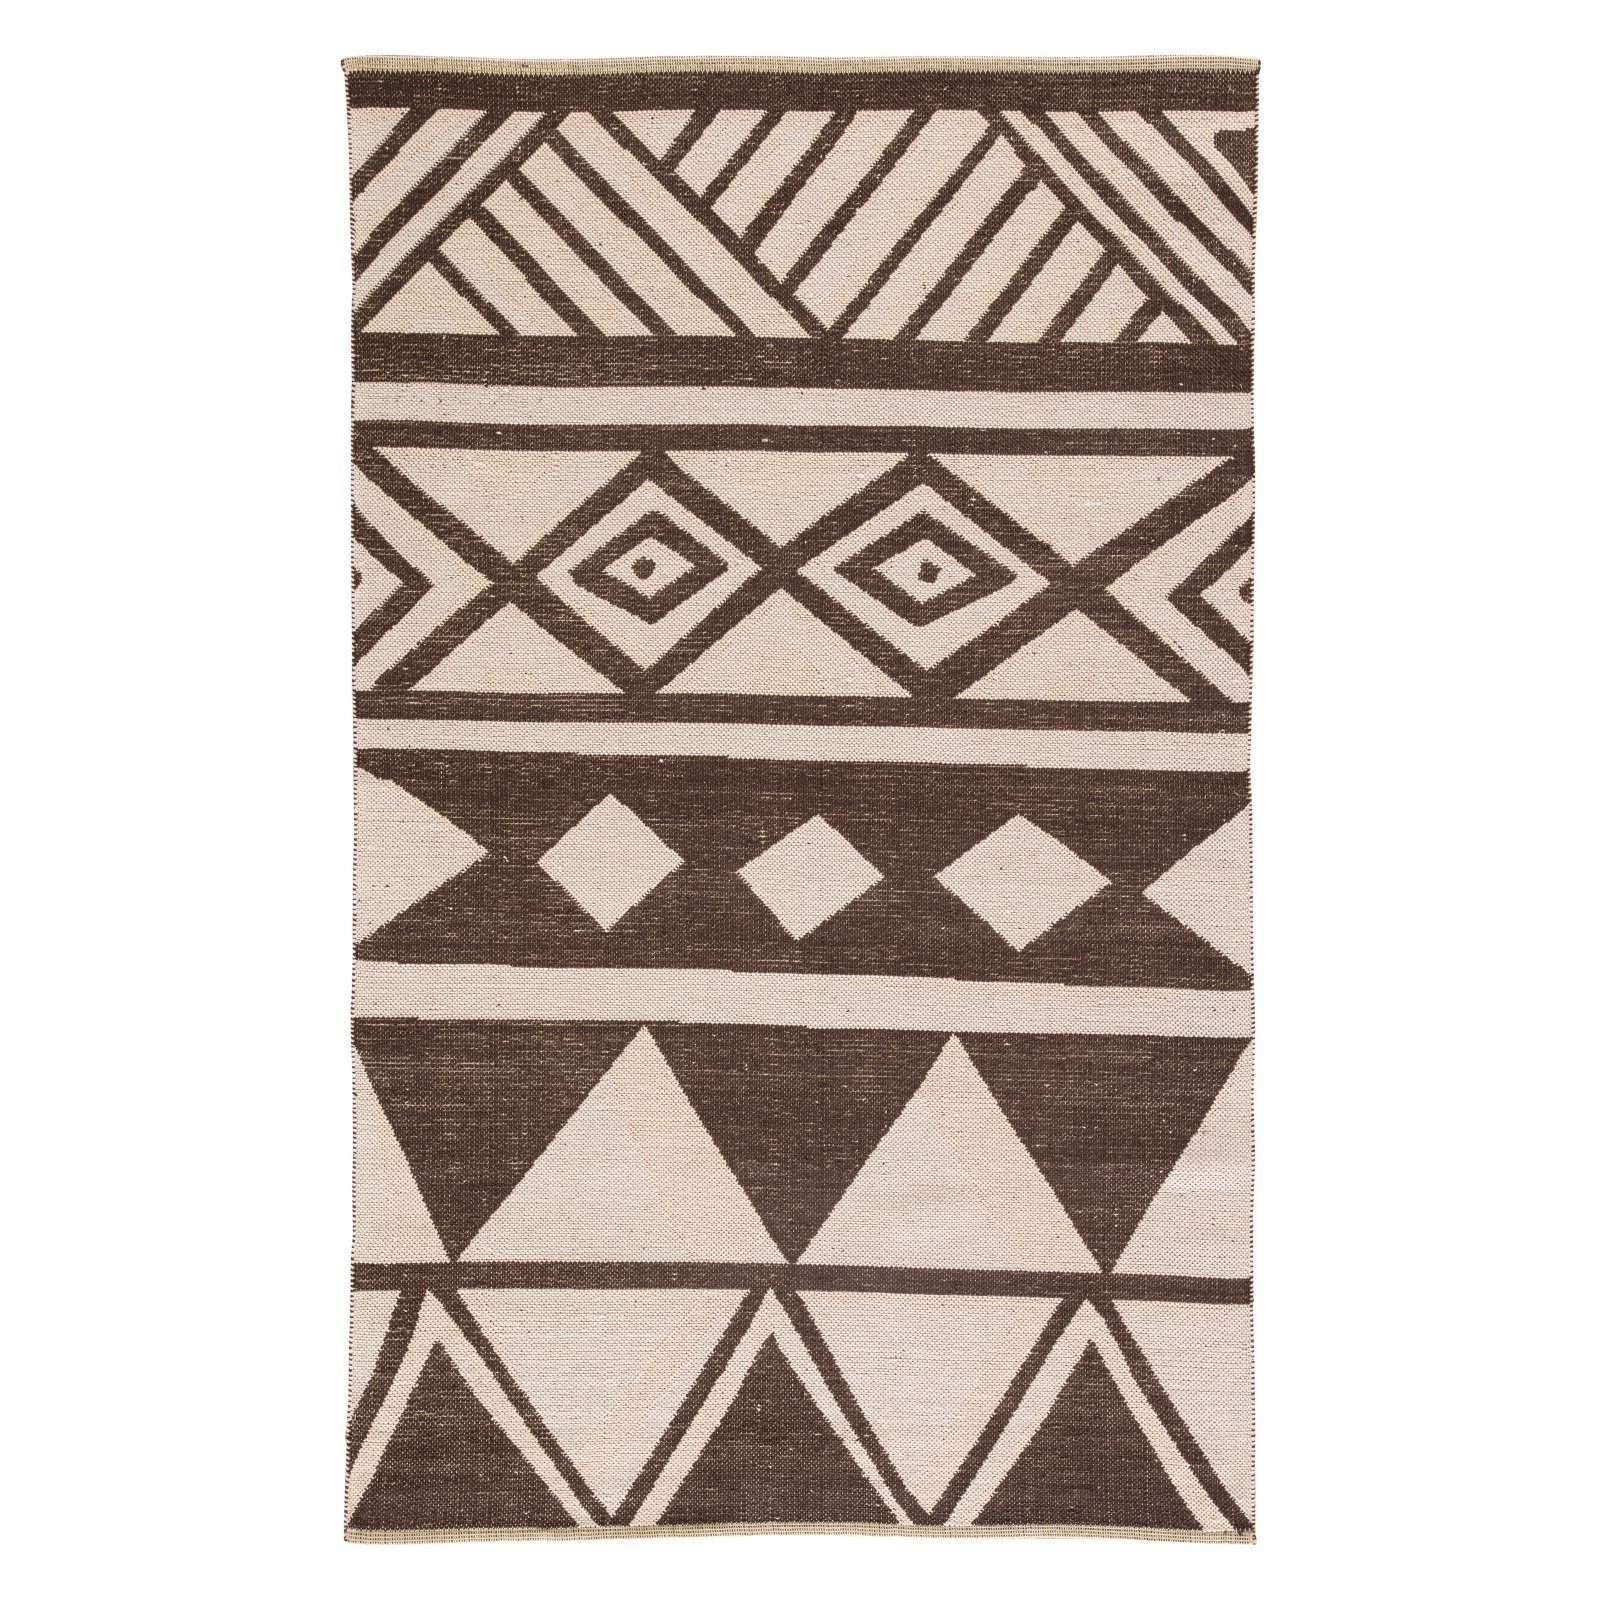 Jaipur Rugs National Geographic Home Tribal Area Rug